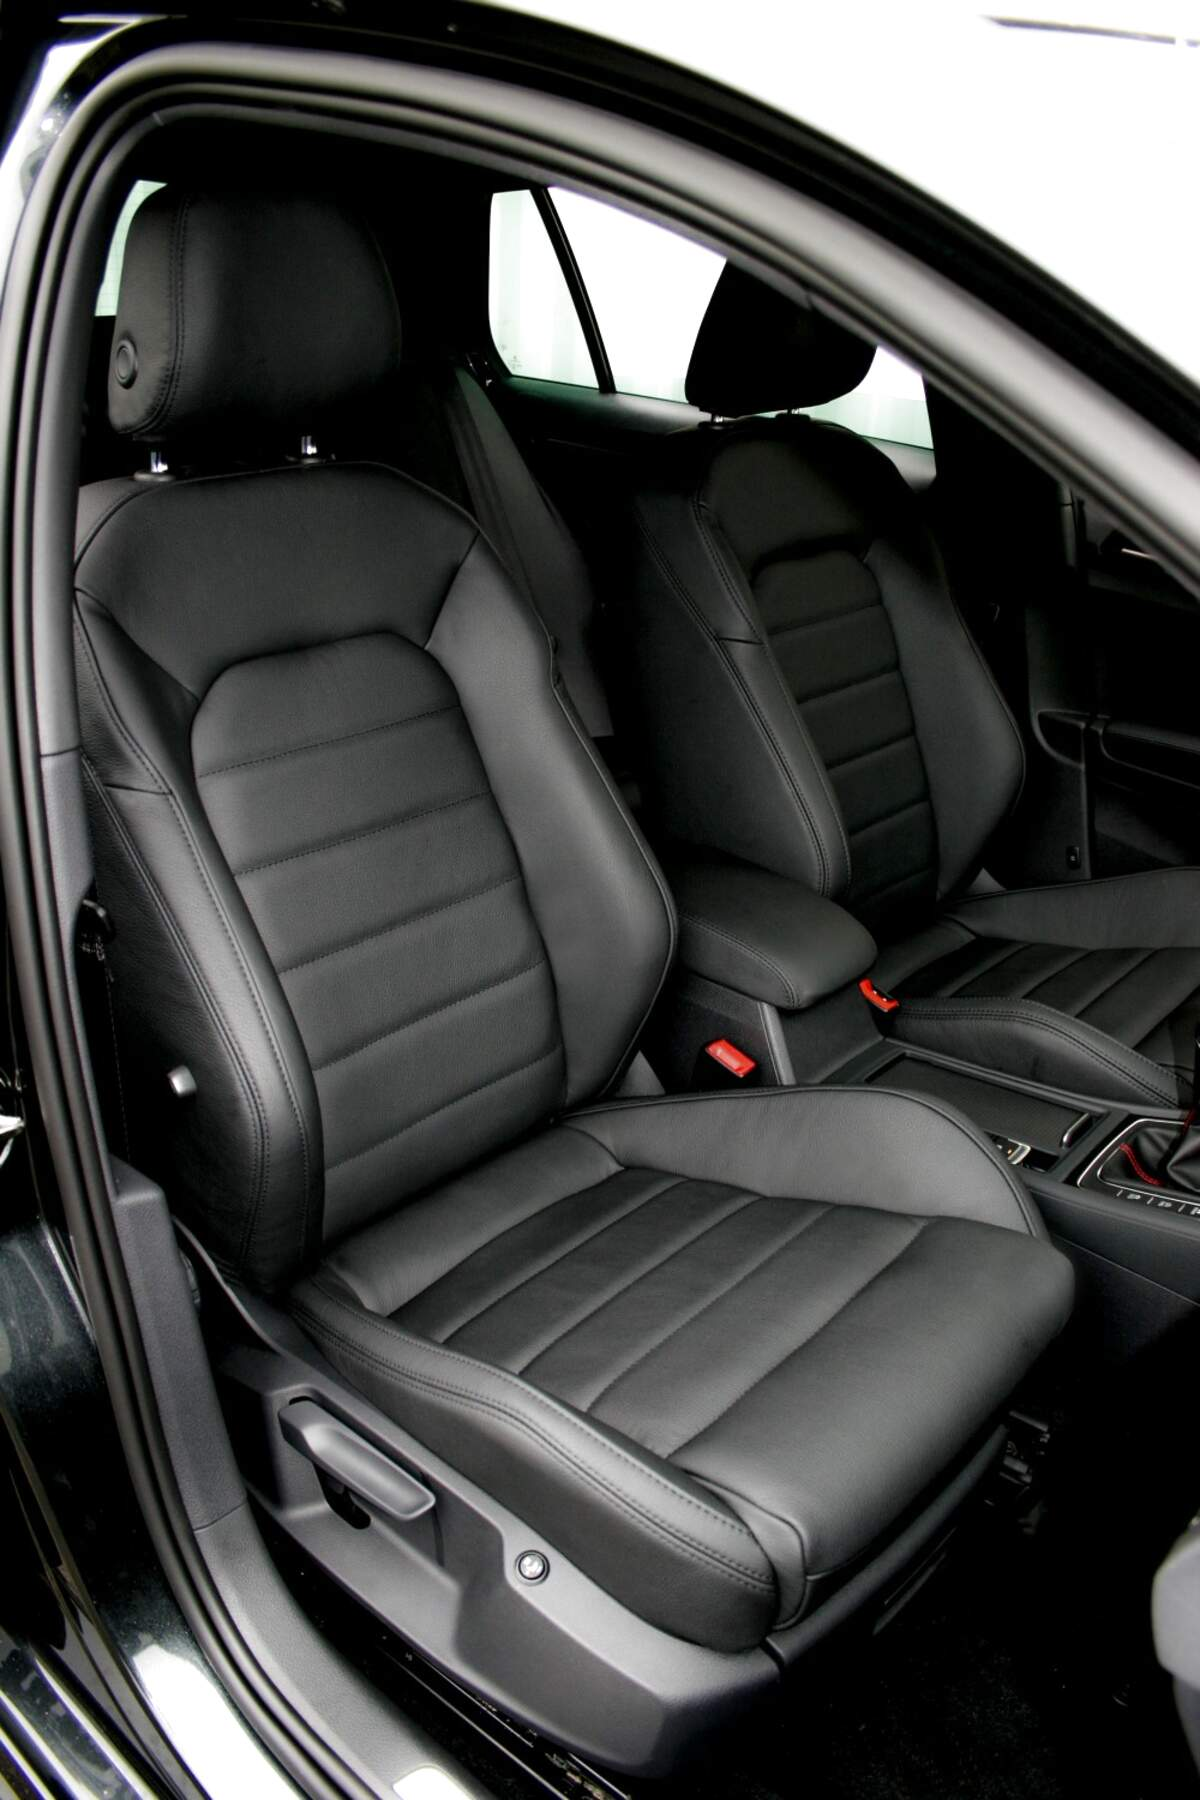 Volkswagen Golf Mk7 Leather Seats for sale in UK